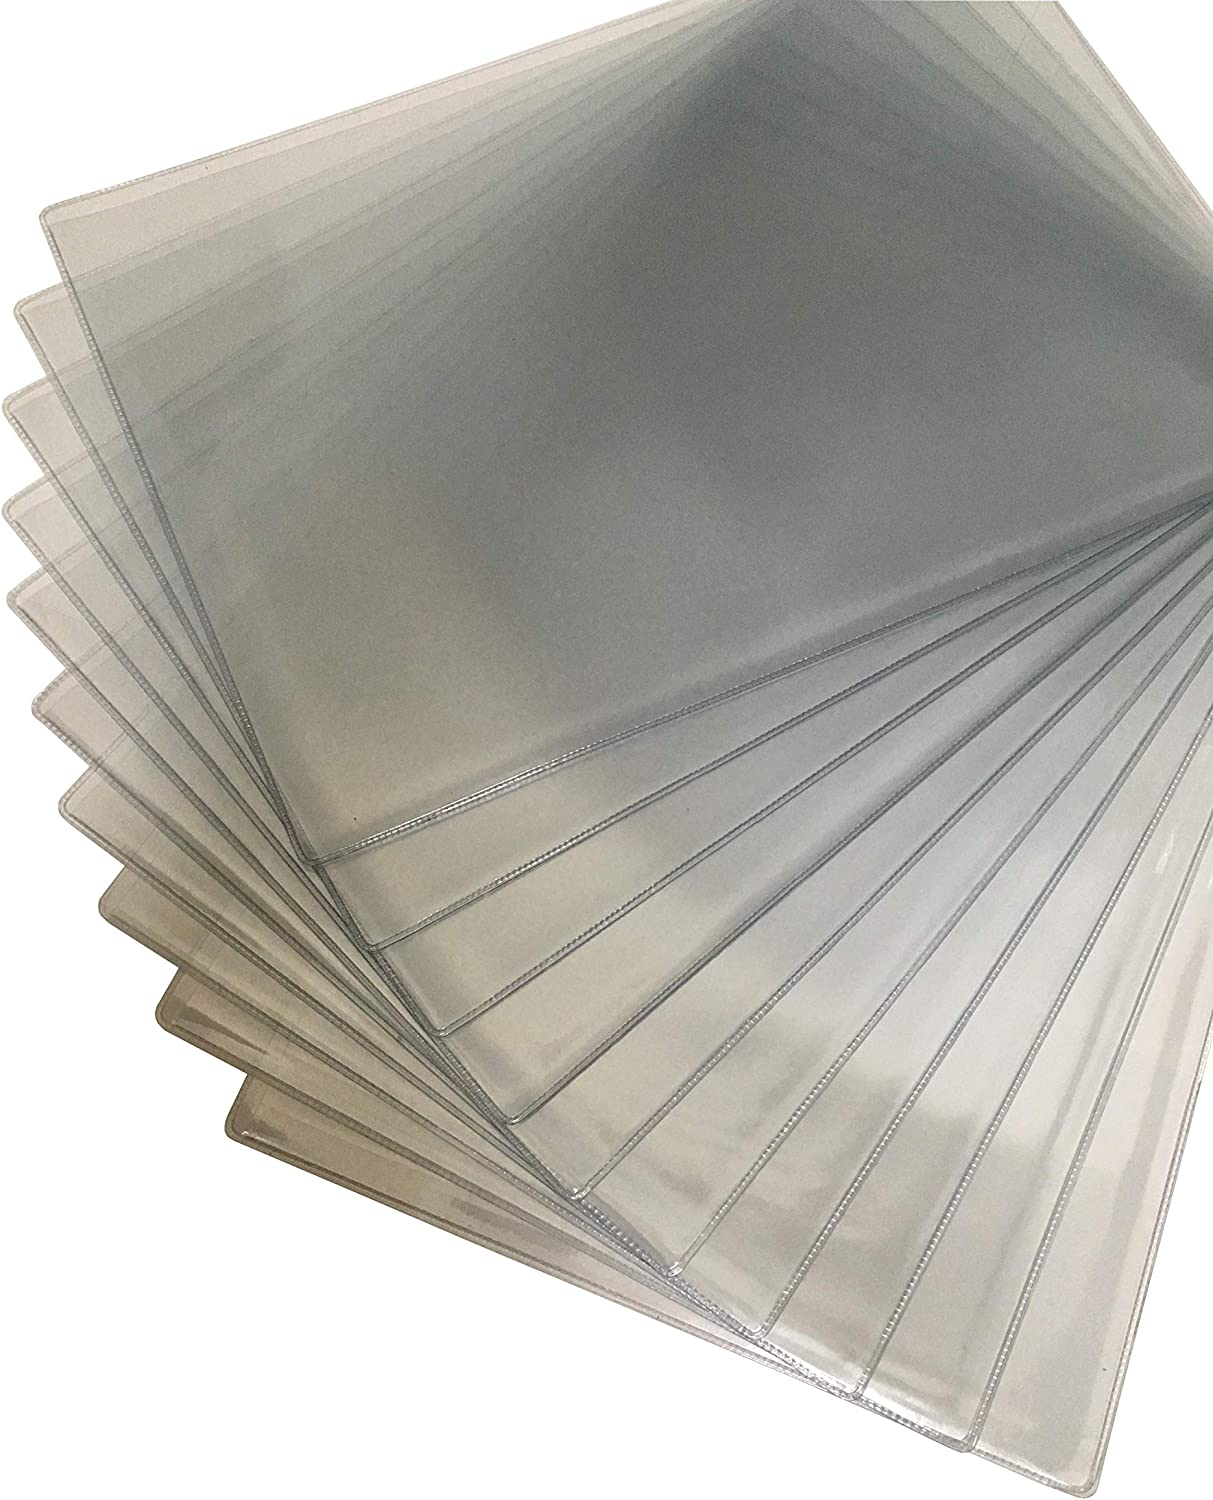 13.6 x 9.3 inches US Legal Size Plastic Jacket Sleeves Clear Transparent Poly Document Folder Project Pockets File Folder Paper Holder Organizer Thick F4 C-Type Pack of 10